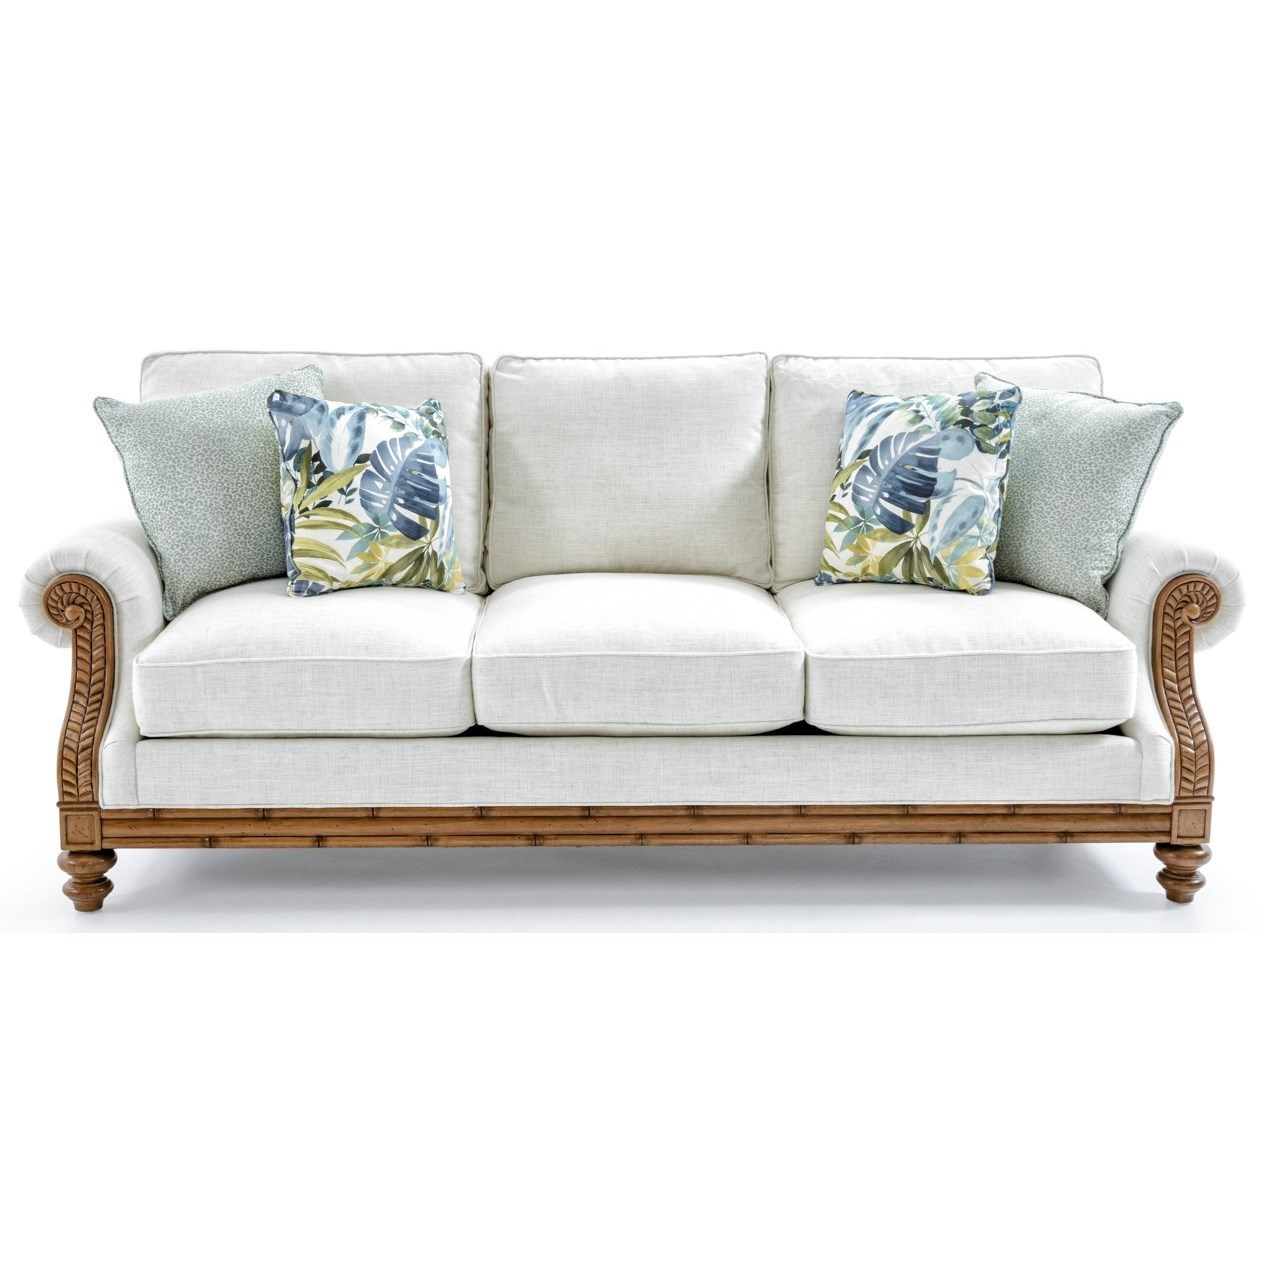 accent sofa air dream bed mattress tommy bahama home upholstery 7921 33 06 quick ship west upholsteryquick shore